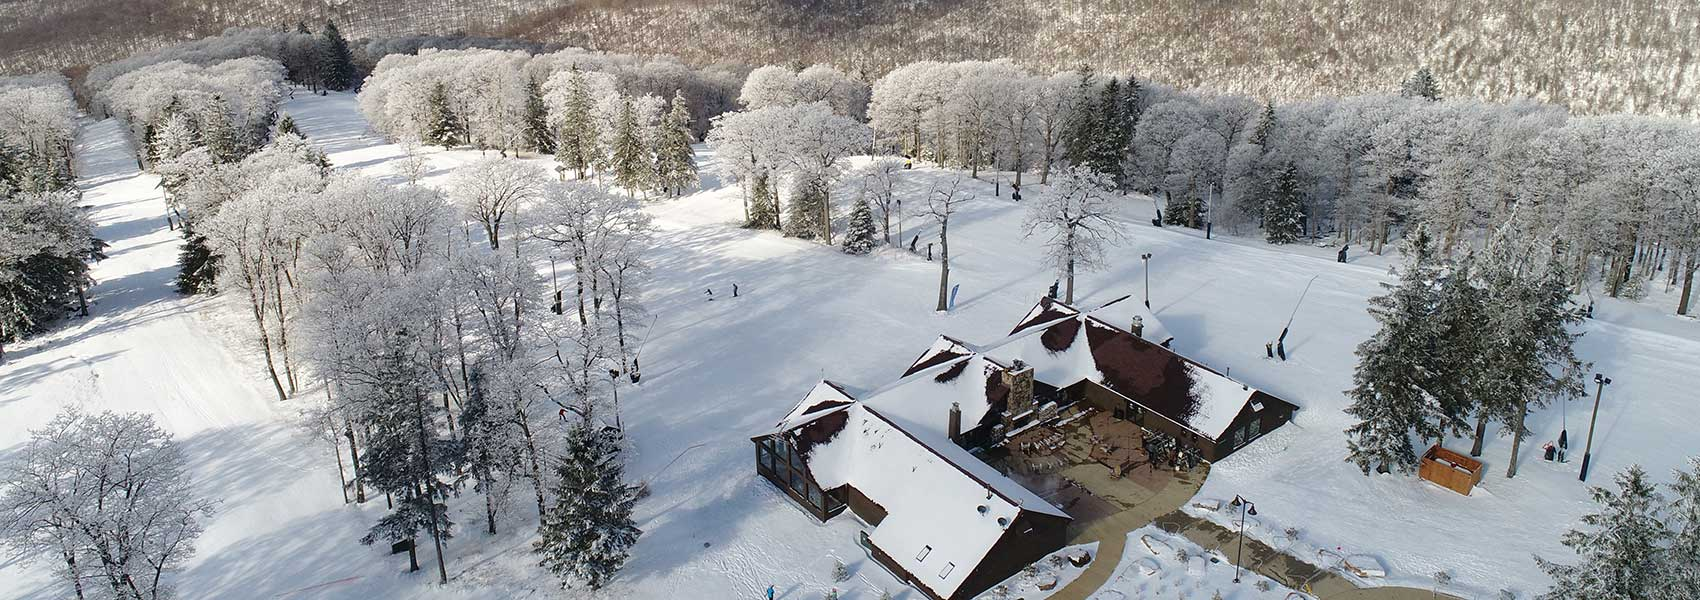 aerial-view-of-lodge-and-slopes-1